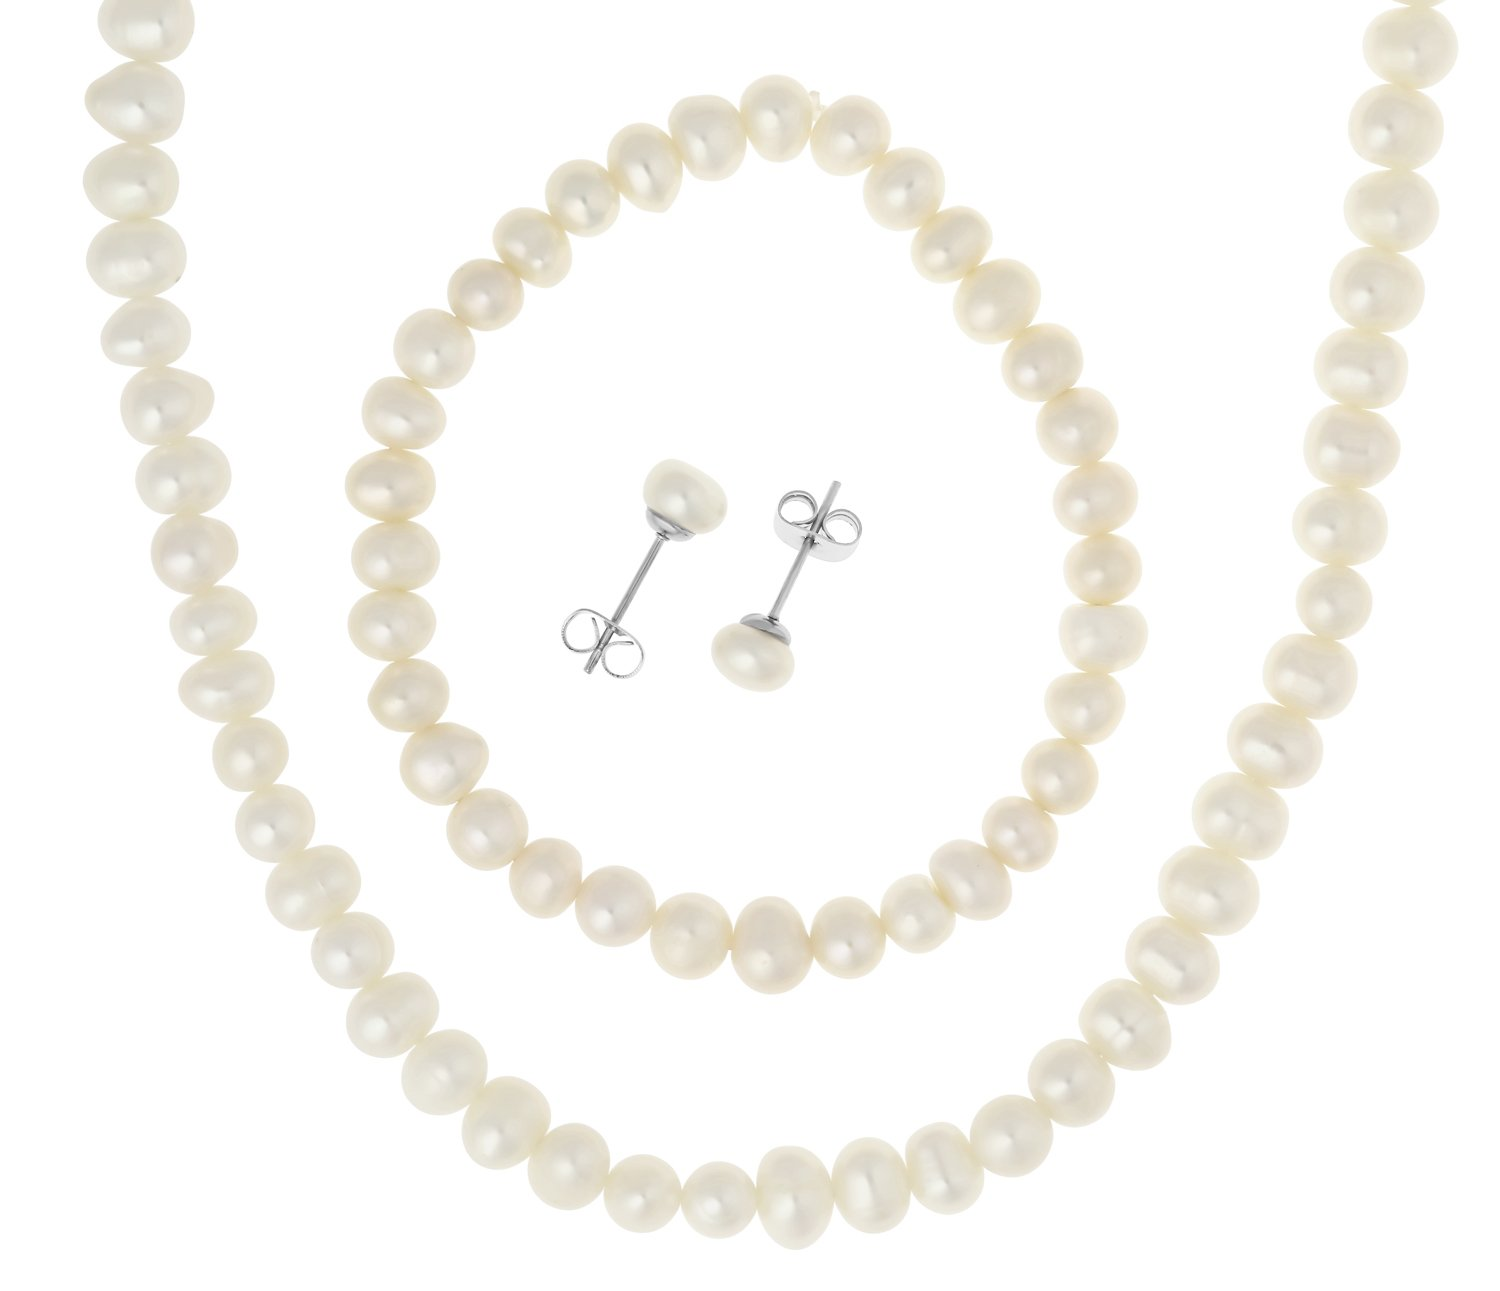 Stainless Steel Freshwater Cultured Pearl Necklace, Bracelet, 6.5mm Earrings Jewelry Set